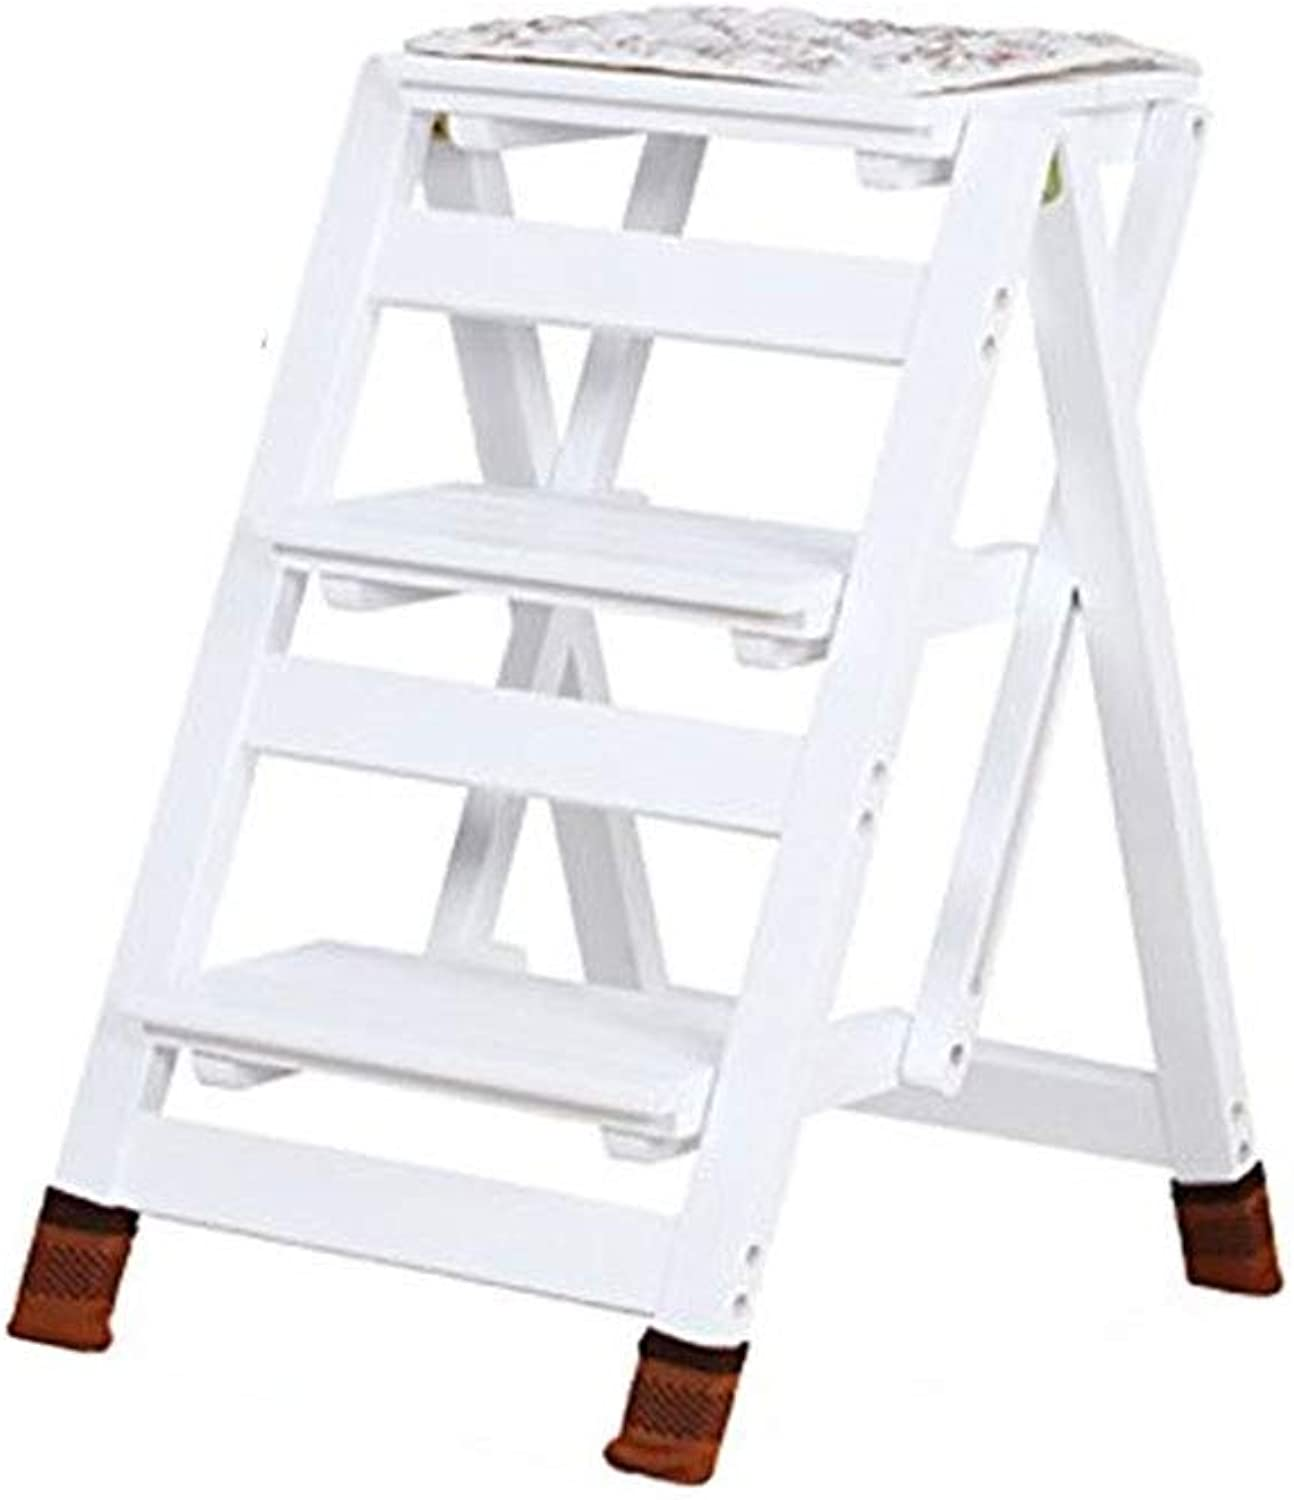 TLTLTD Step Stool, Three-layer Folding Dual-purpose Step Stool Dual-use Household Small Wooden Ladder Multi-function Flower Stand Ladder Solid Wood Contraction Ladder (color  White) (color   White)